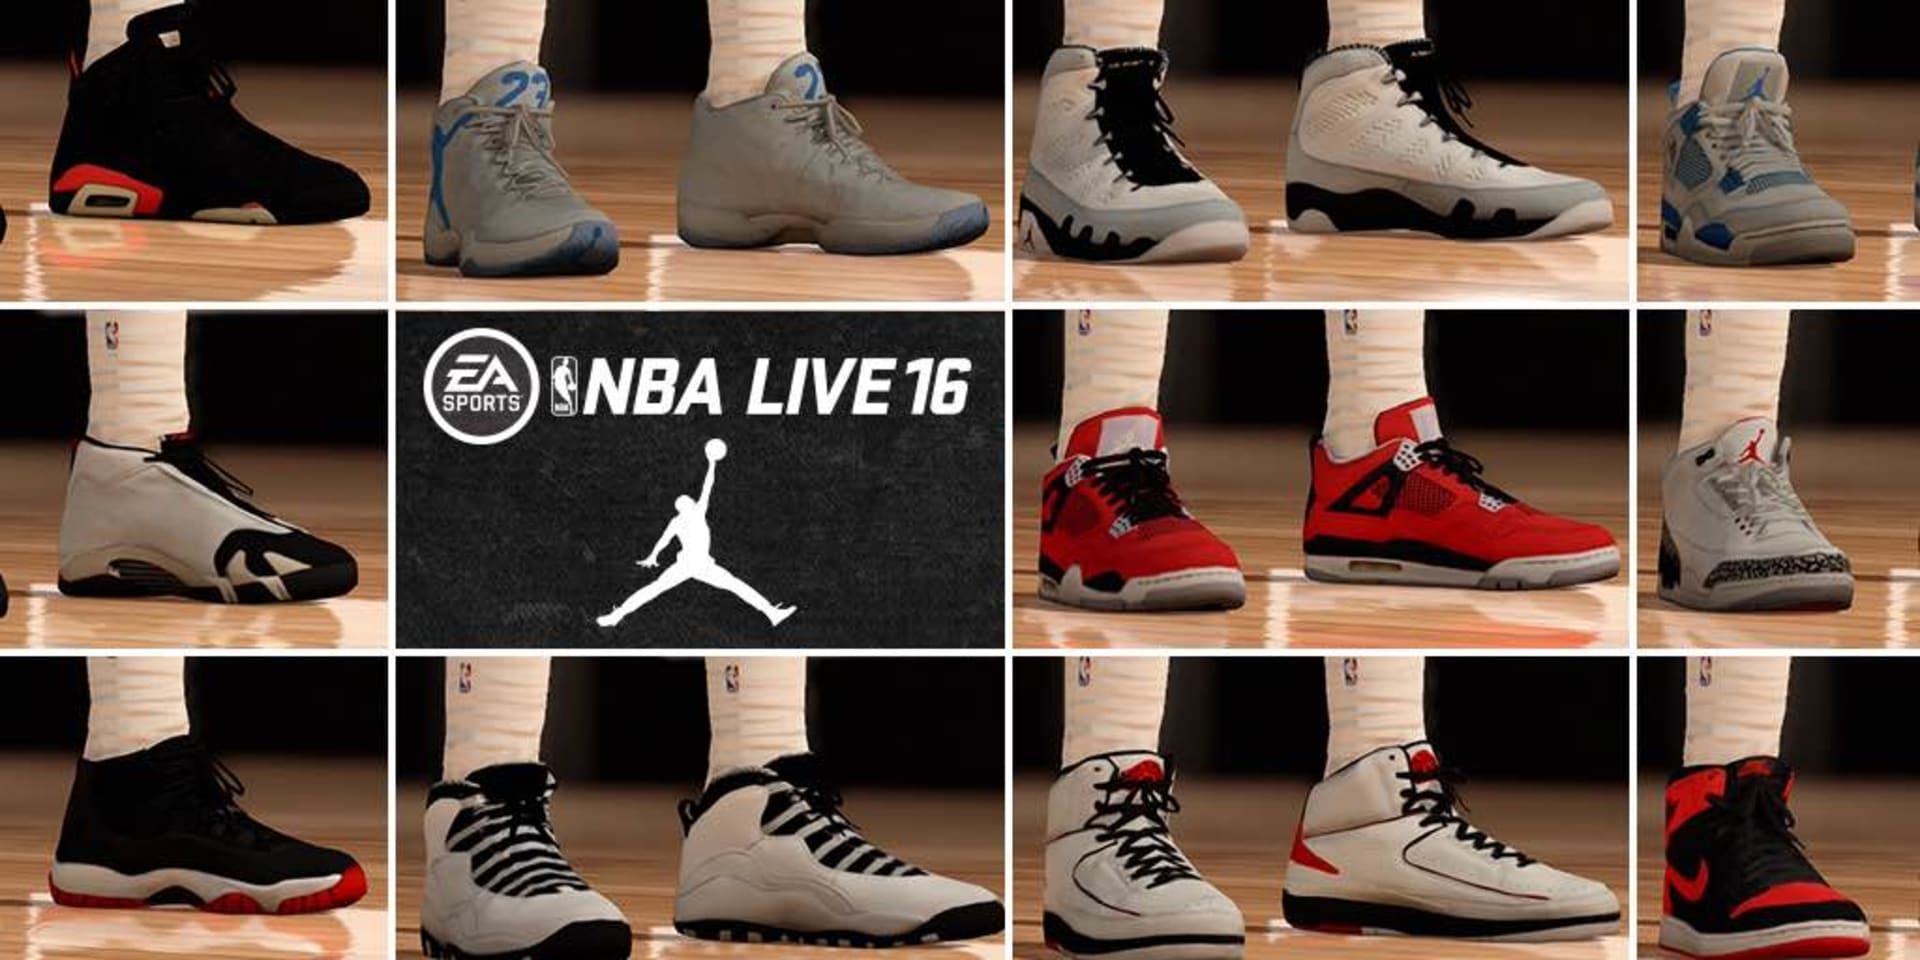 e0a9bab5d66 Digital Deadstock  How Sneakers End Up in Basketball Video Games